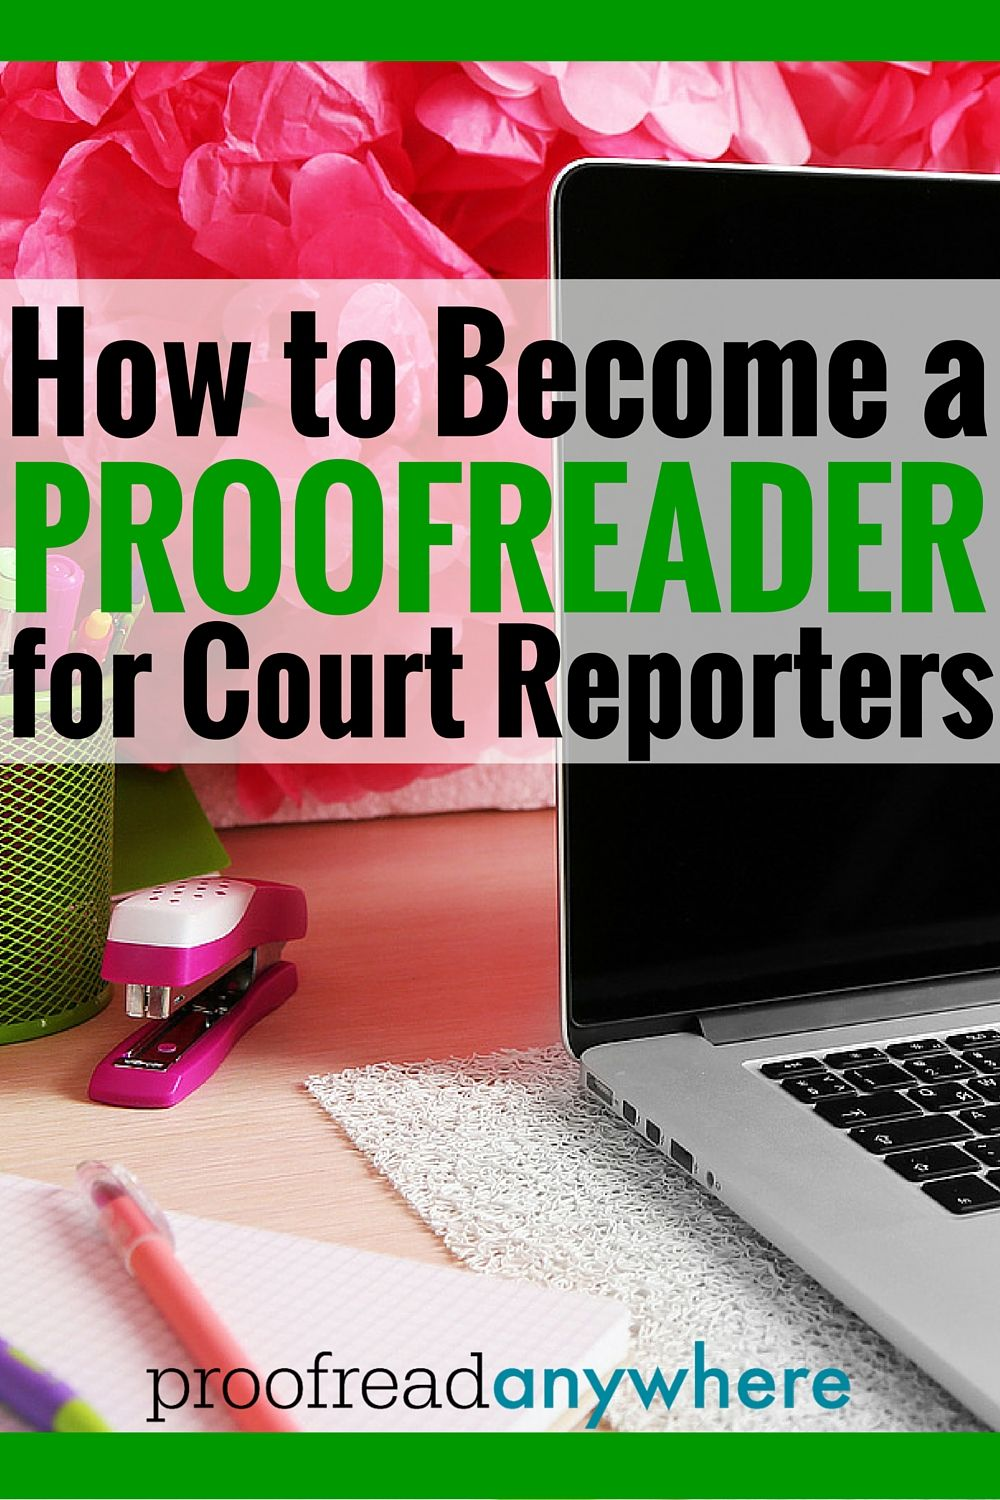 Court reporters find plenty of demand for their skills and